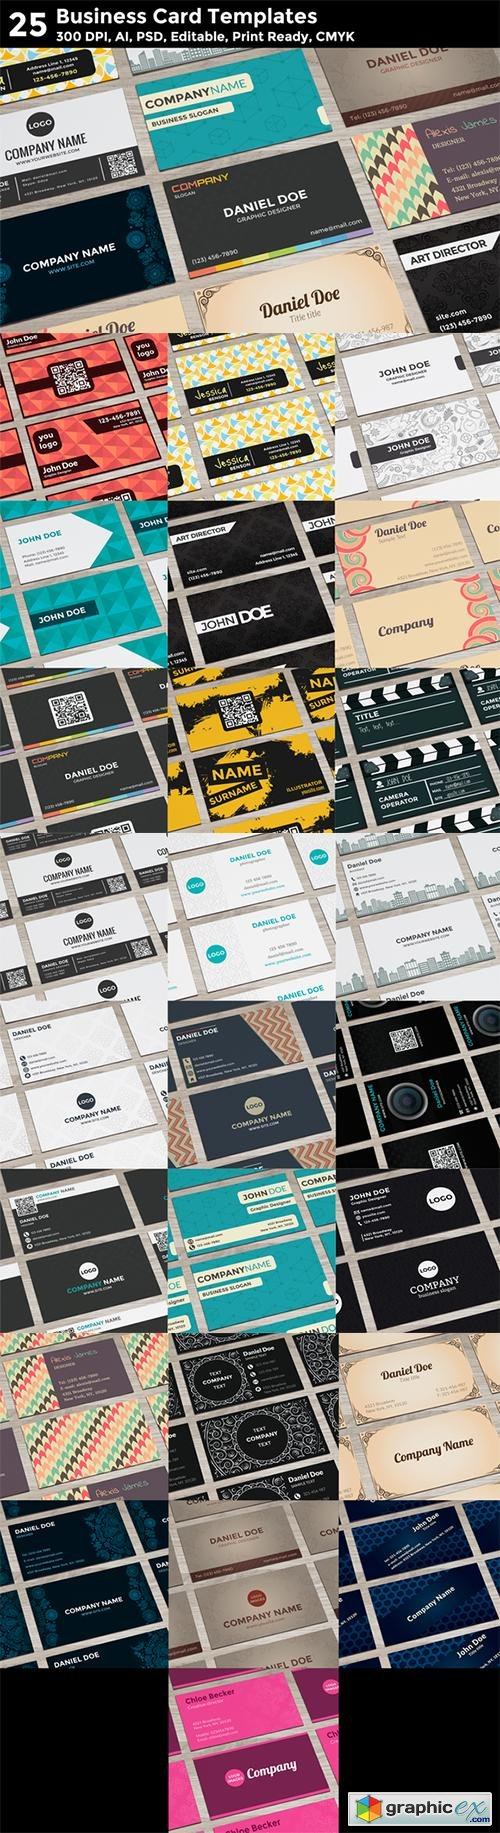 25 Business Card Templates